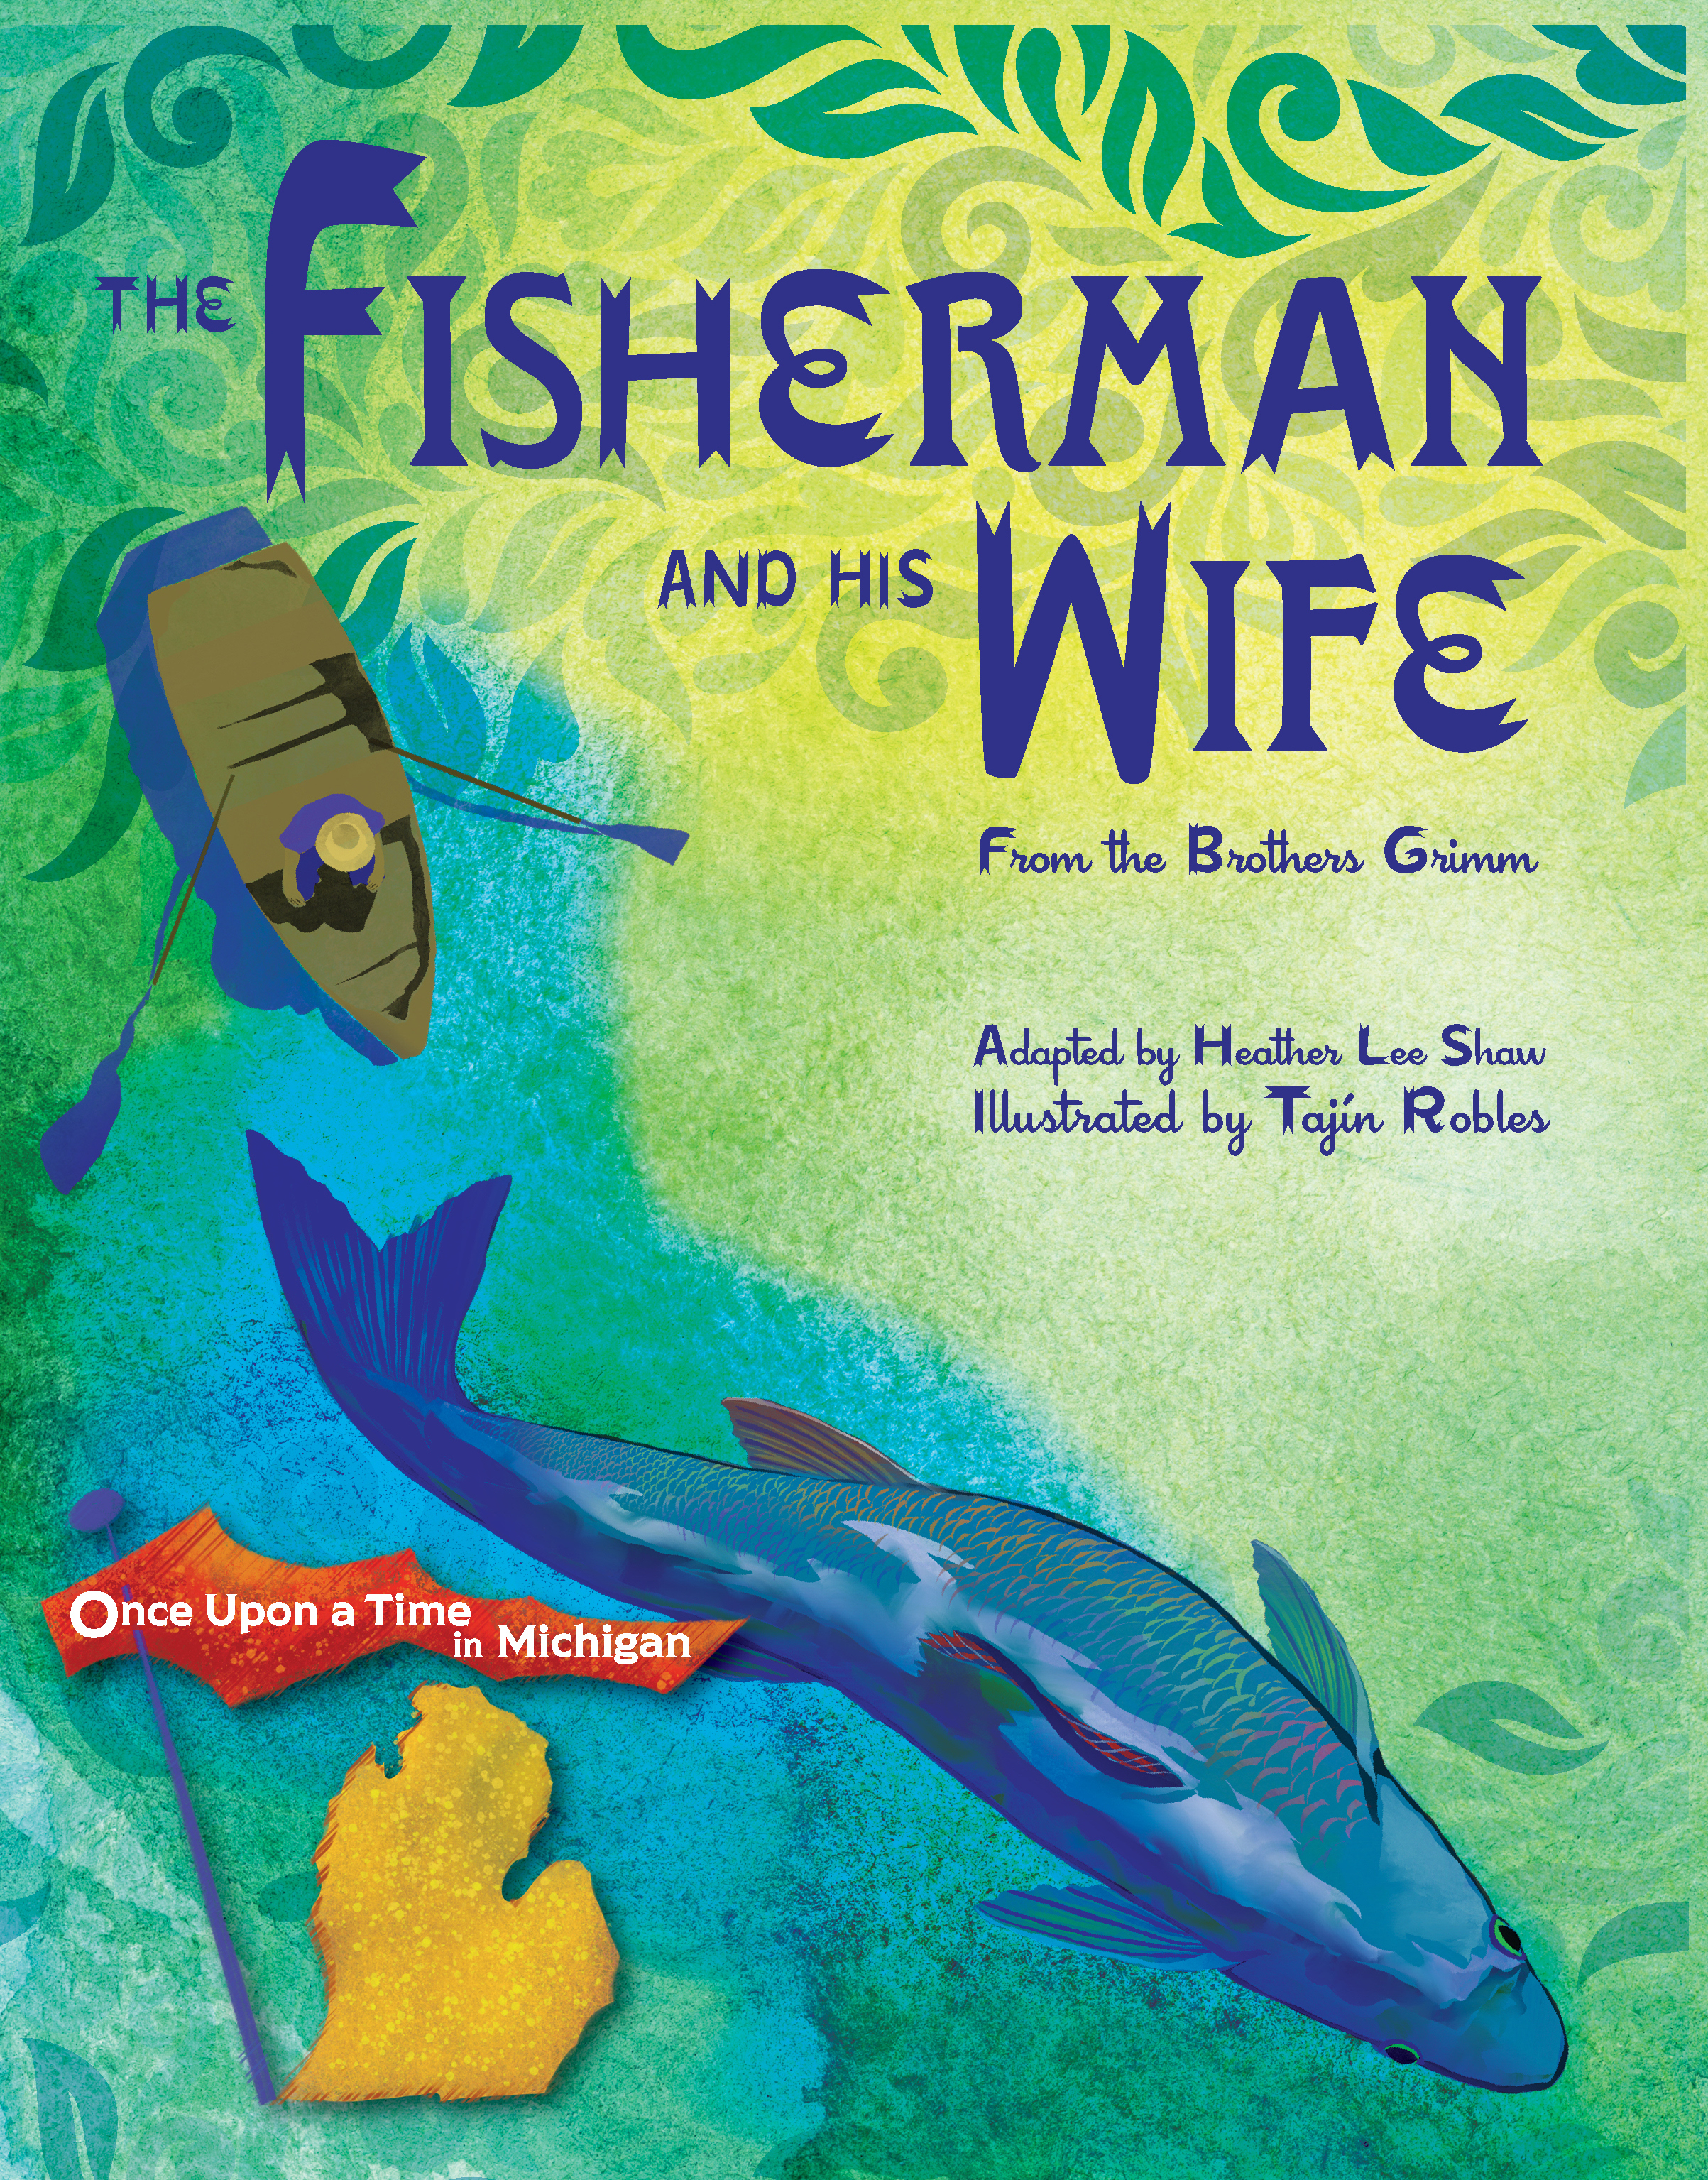 - In this fable, a poor northern Michigan fisherman catches a magic fish. When he tells his wife that he released the fish without asking for a reward, she makes it clear that what the fisherman's wife wants, the fisherman's wife gets.More about the bookBuy the book on Amazon